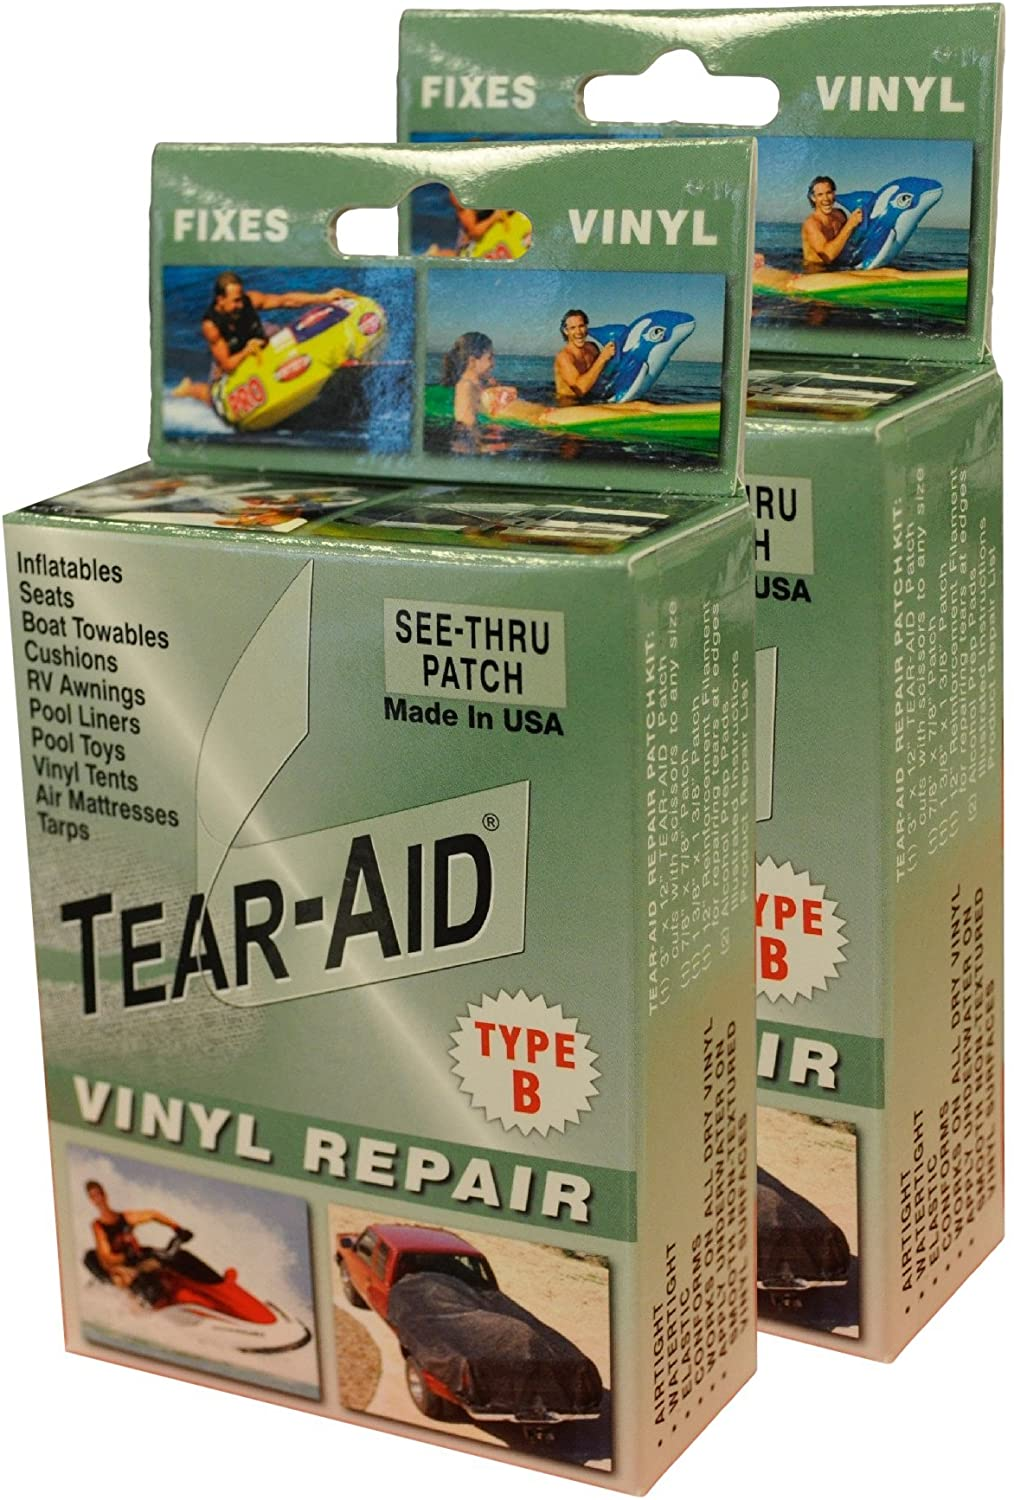 Vinyl Repair and Fixes by Tear-Aid